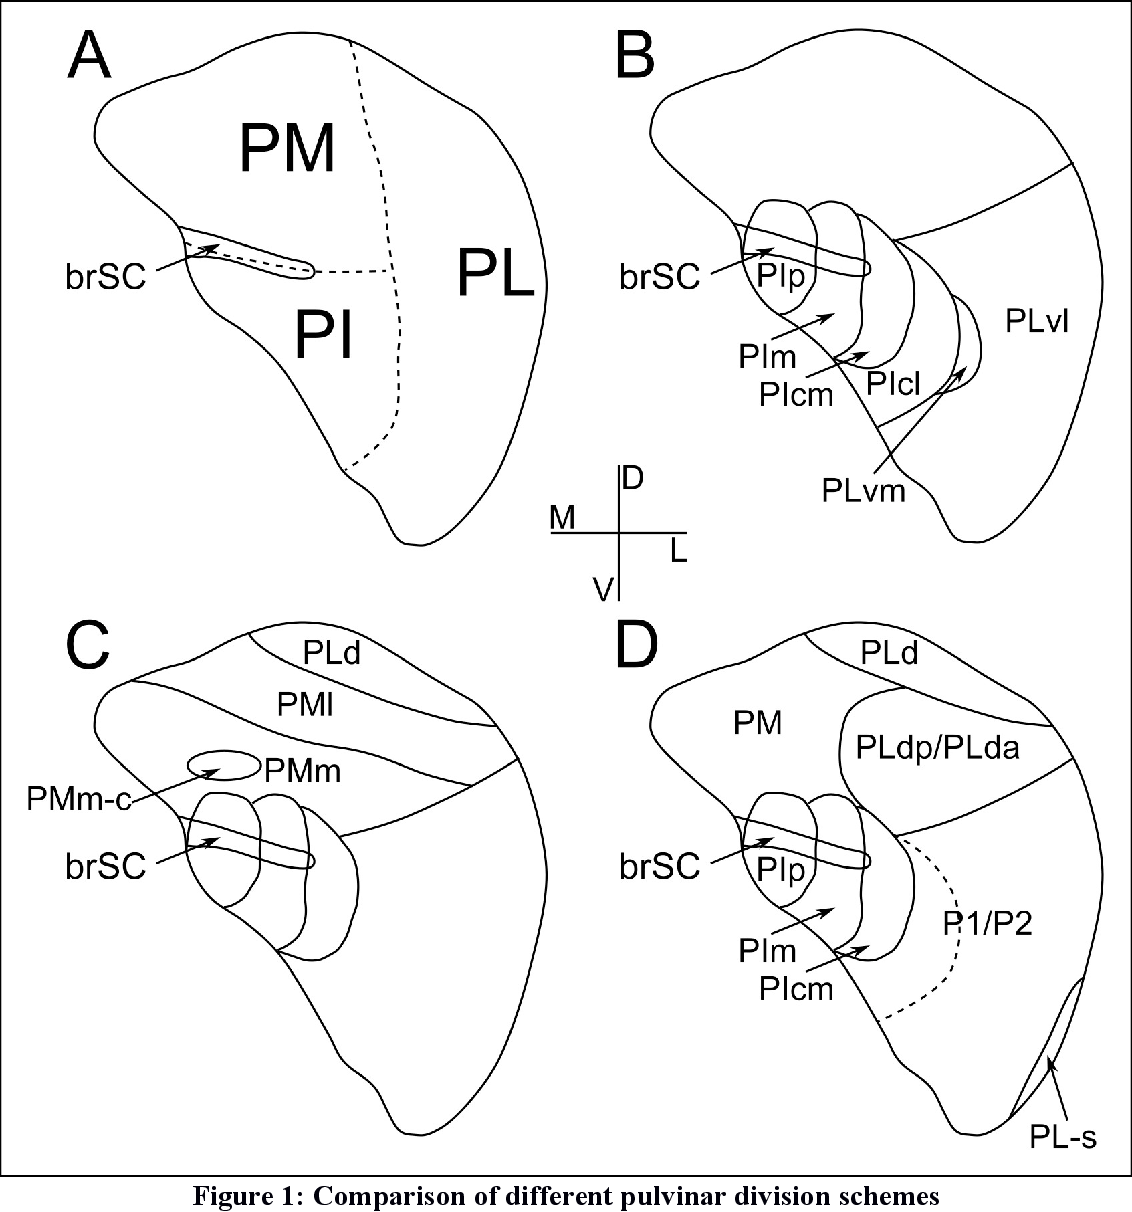 pulvinar and its projections to early visual cortical areas in